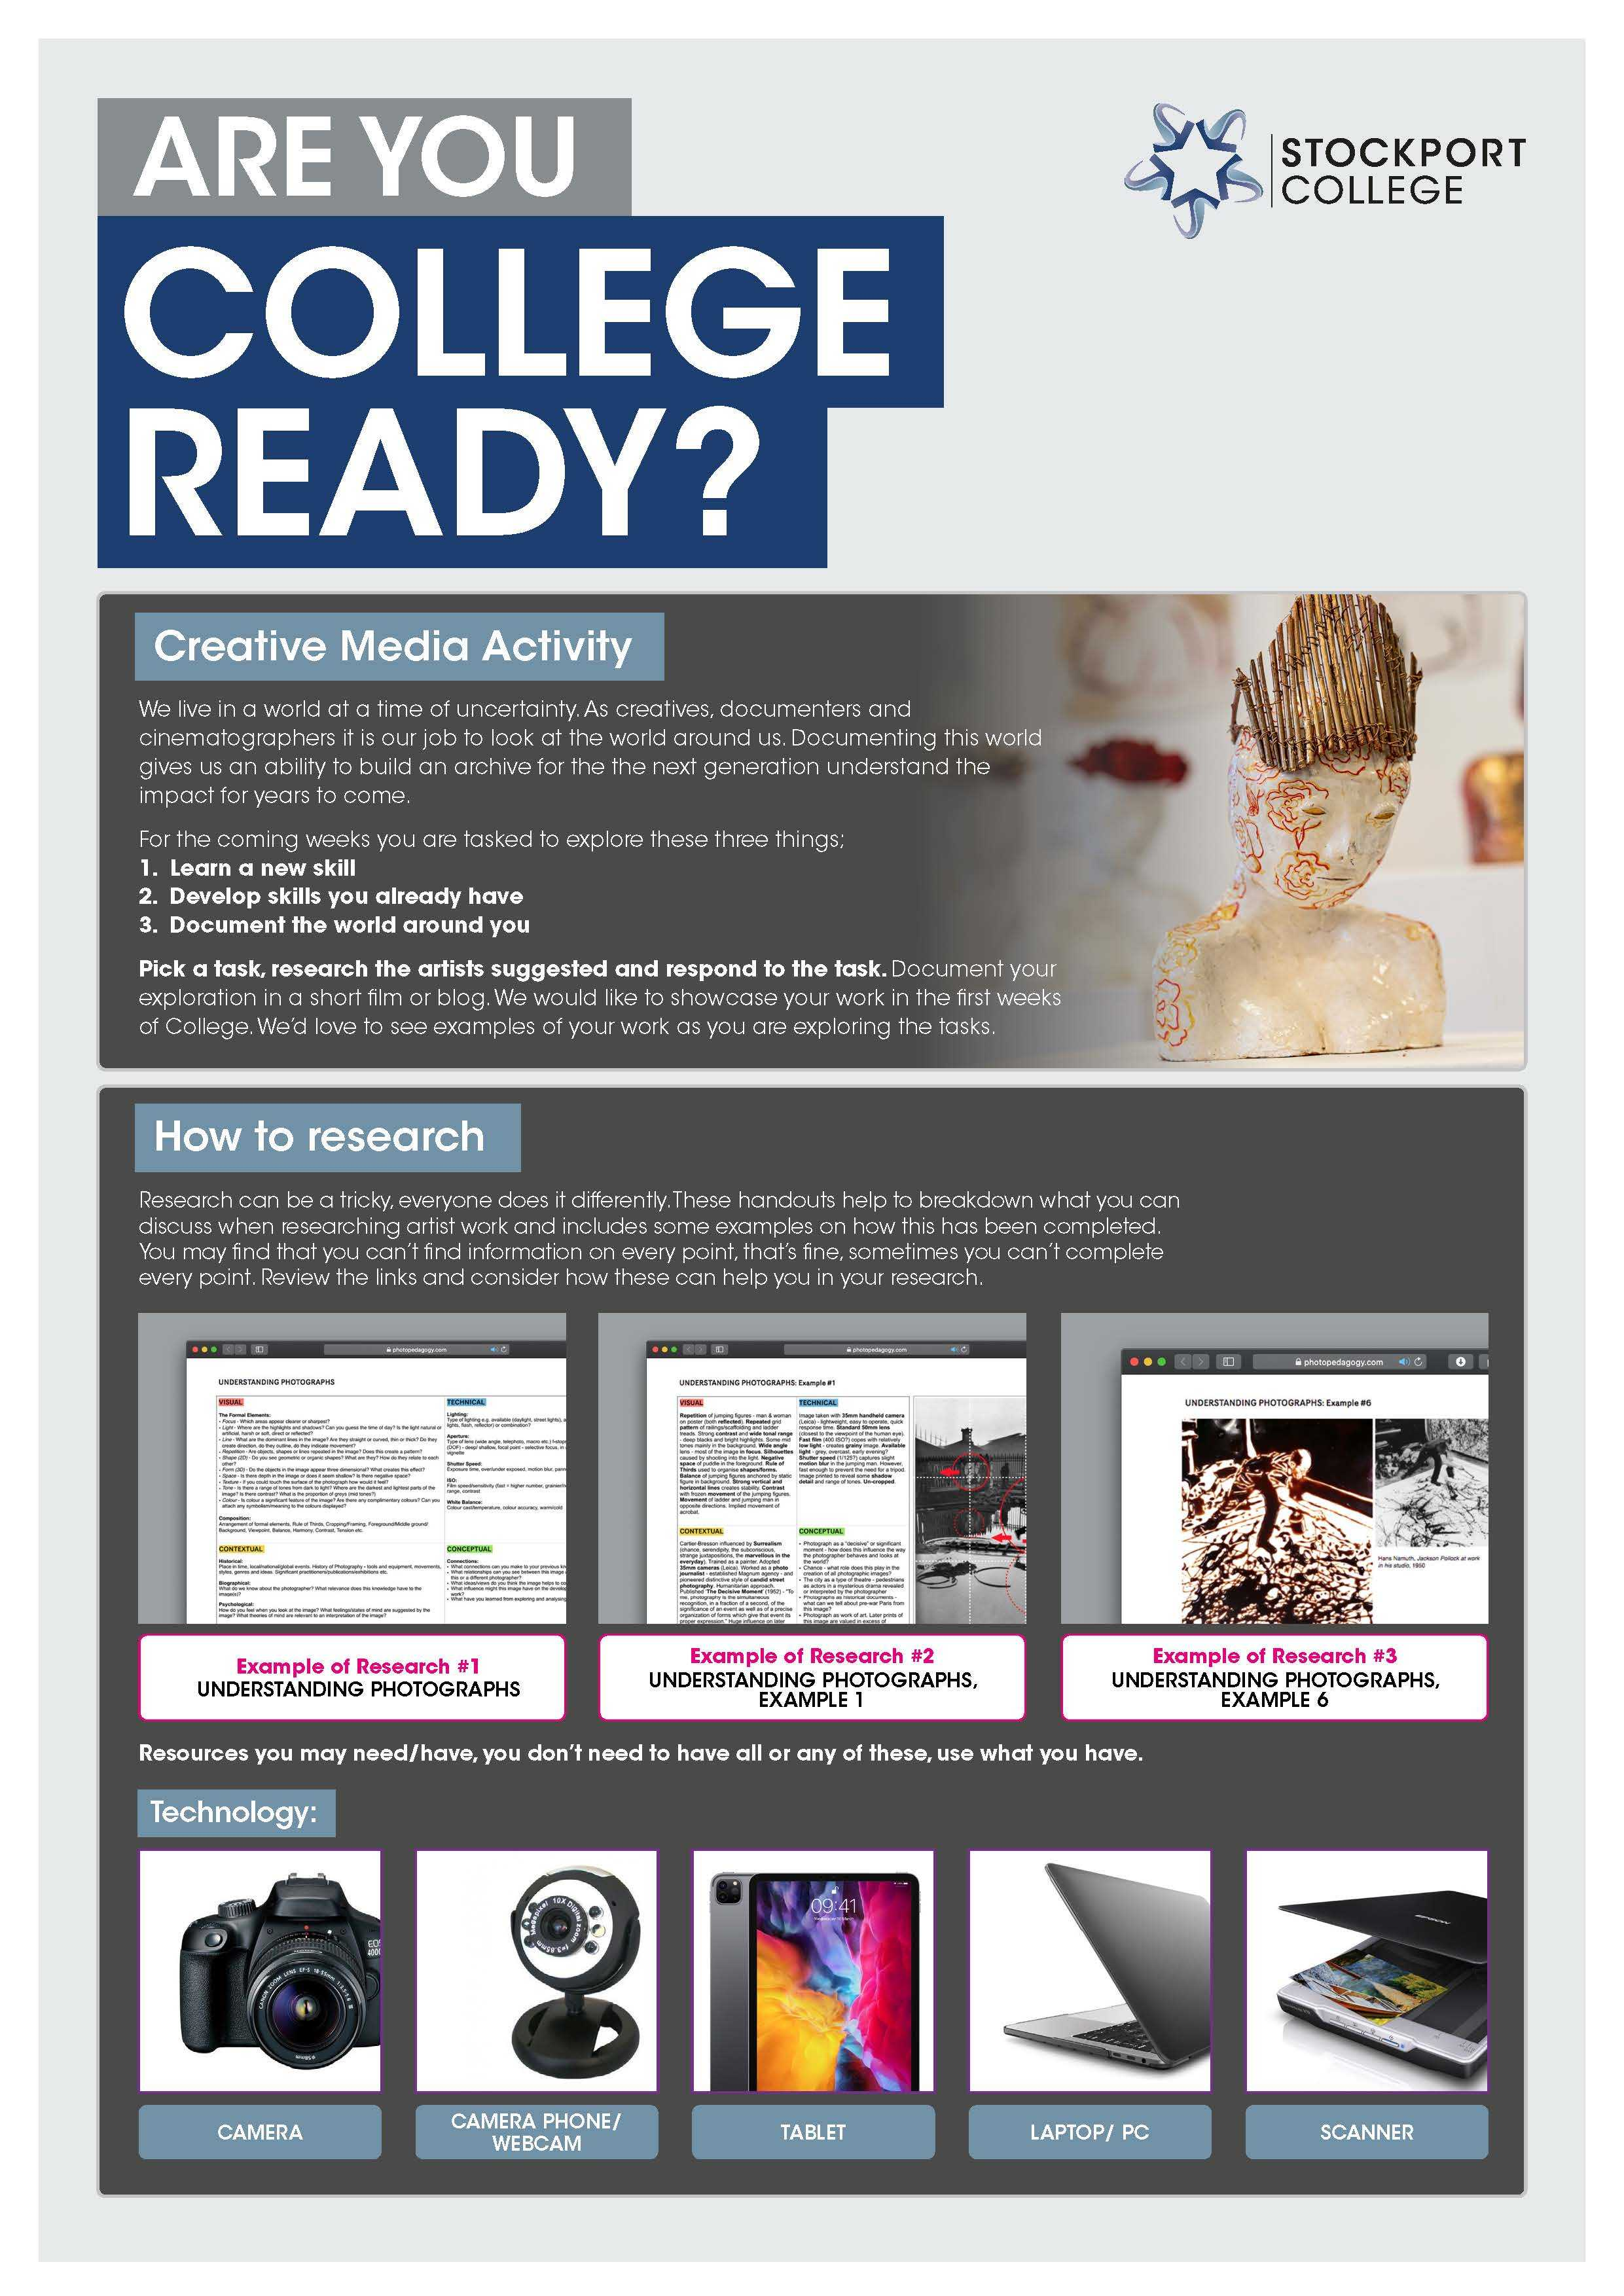 Are You College Ready Transition Leaflet Creative Media STOCKPORT Jun20 Page 1